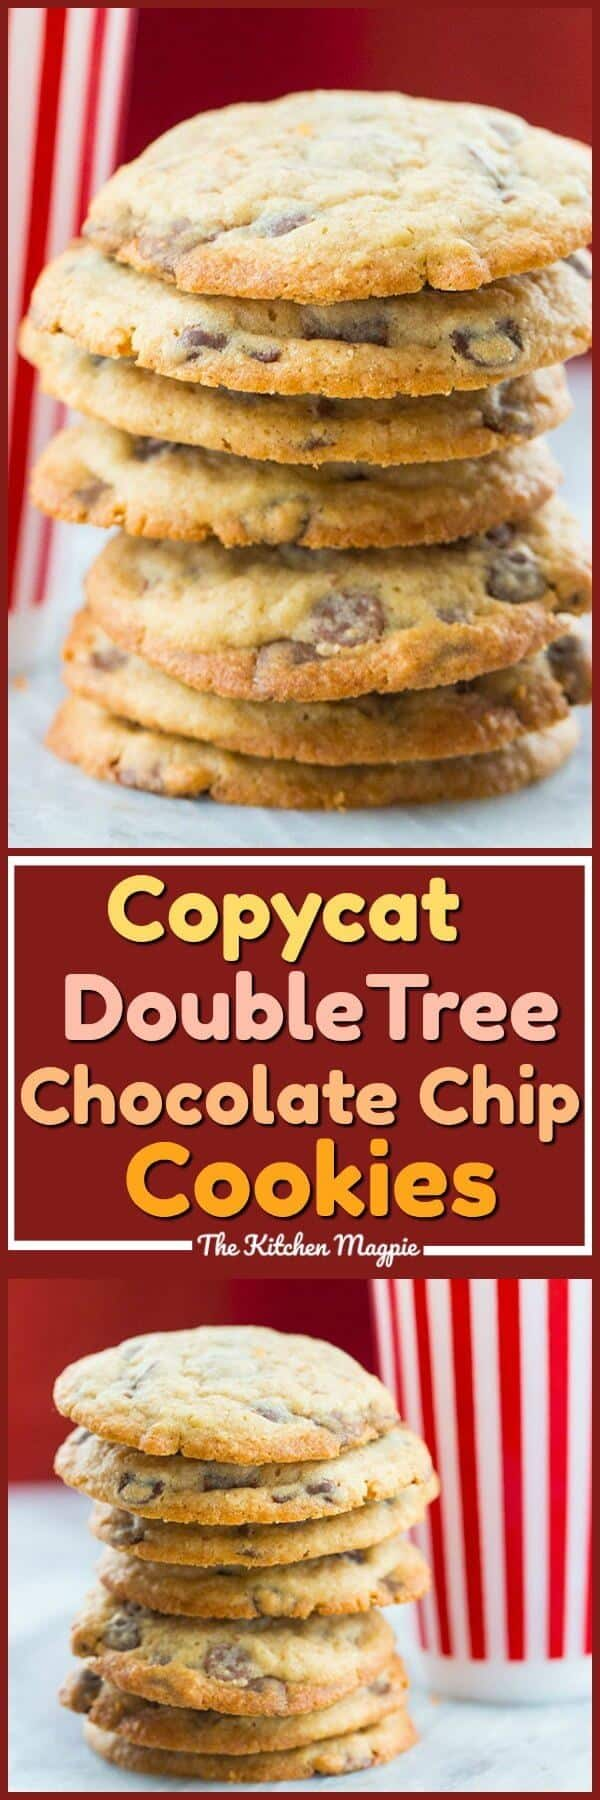 Copycat DoubleTree Hotel Chocolate Chip Cookies Recipe! If you have ever stayed at the DoubleTree by Hilton hotel chain you'll know that they are famous for their warm chocolate chip cookies upon your check in to the hotel! Now you can make them at home! #cookies #copycat #chocolatechip #chocolate